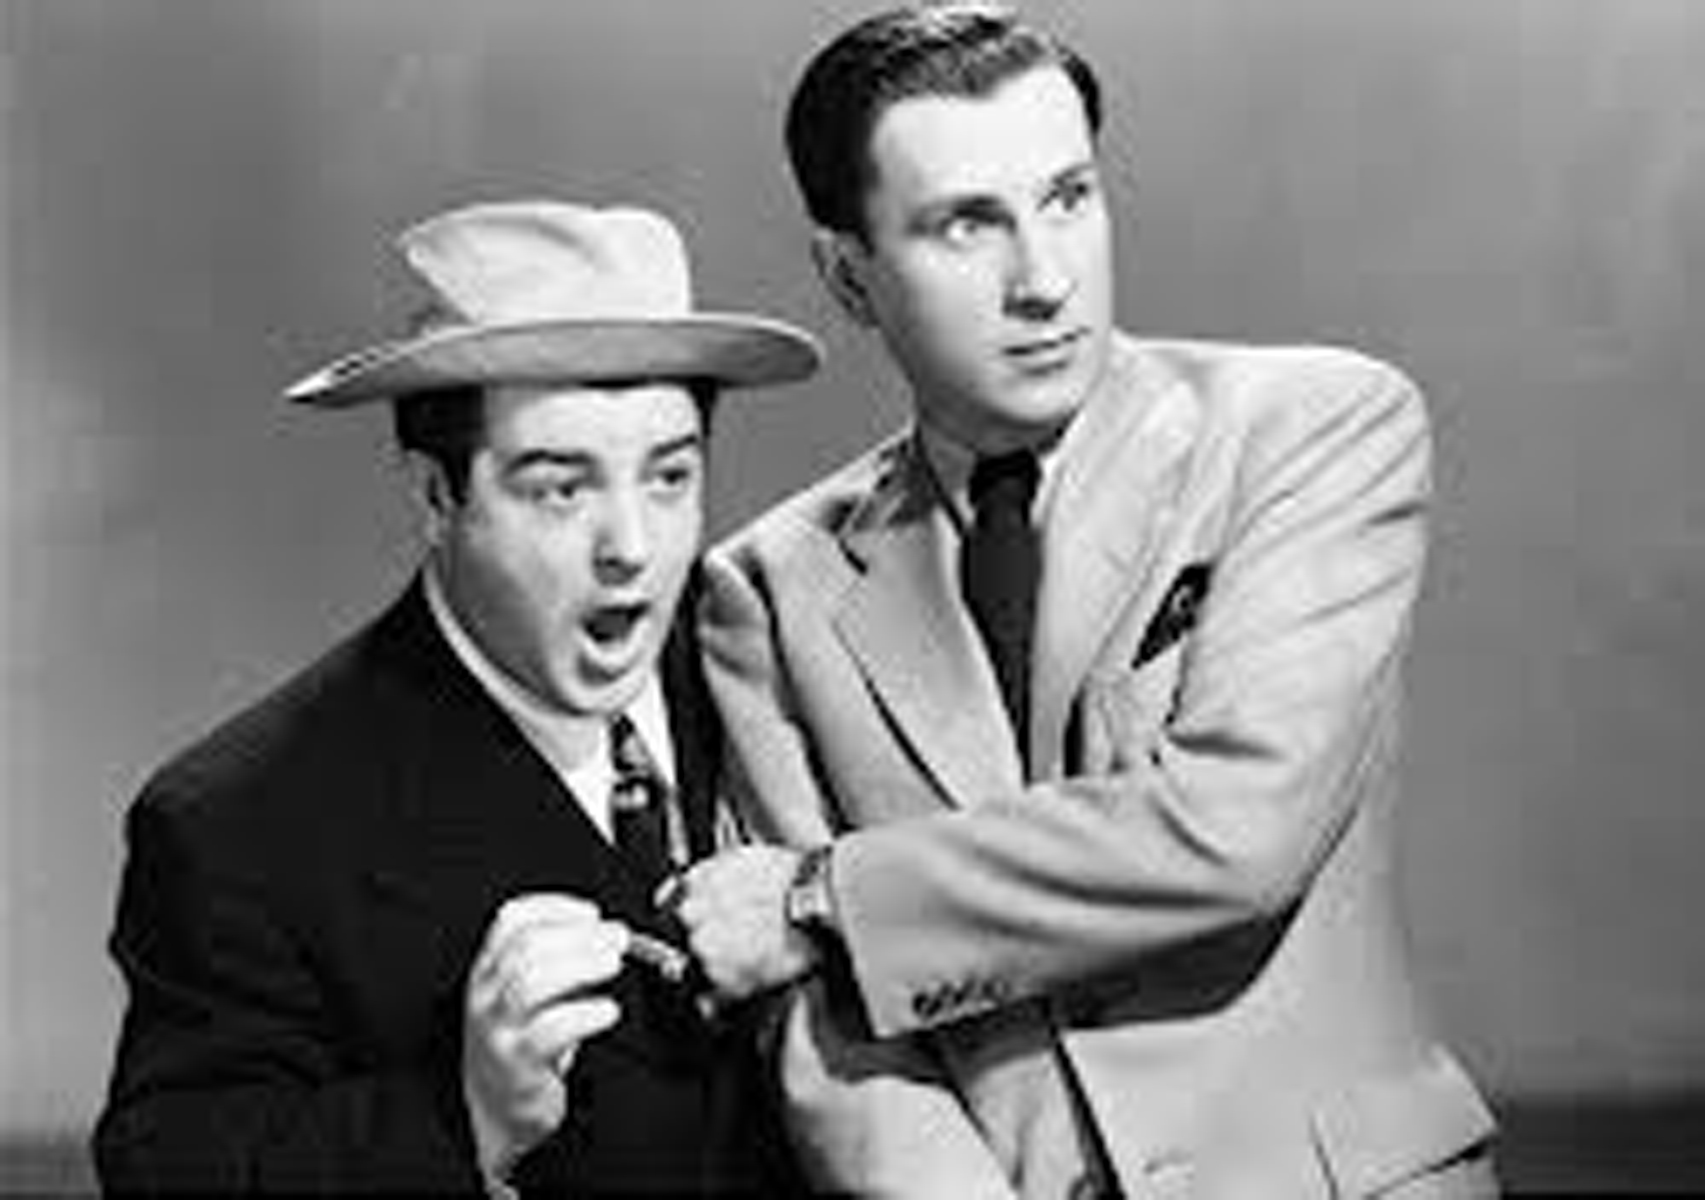 Abbott and Costello in Baseball's Hall of Fame